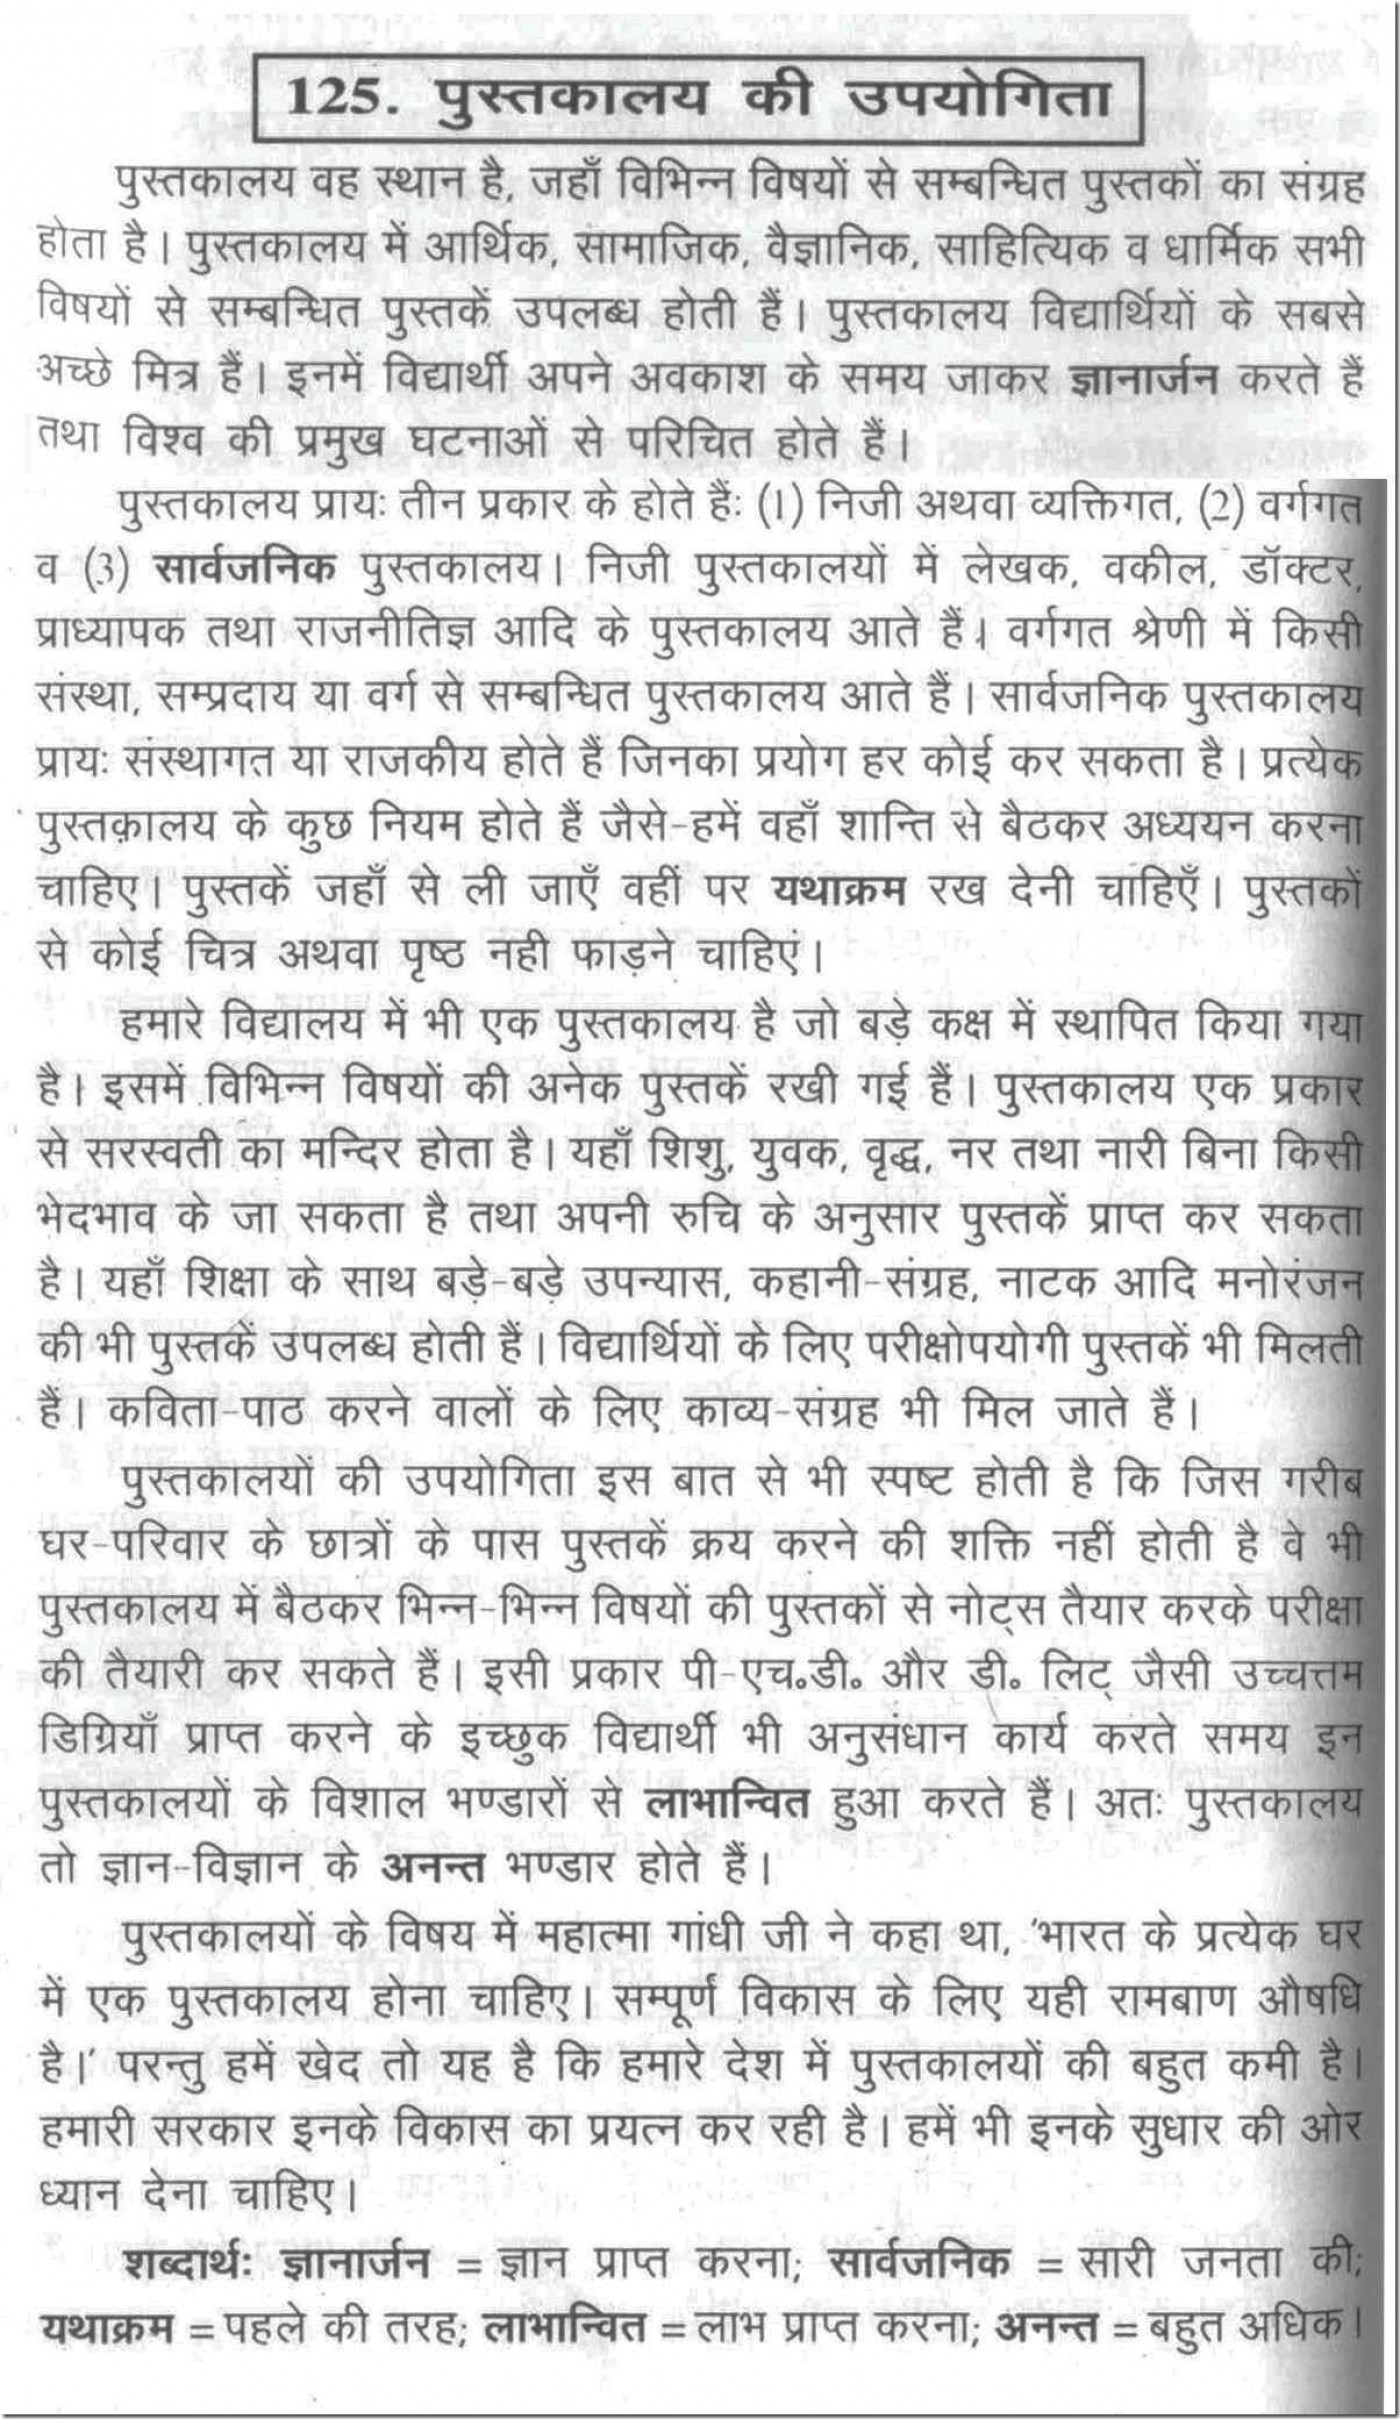 009 100125 Thumb Essay Example Good Habits In Exceptional Hindi Habit Wikipedia Eating 1400